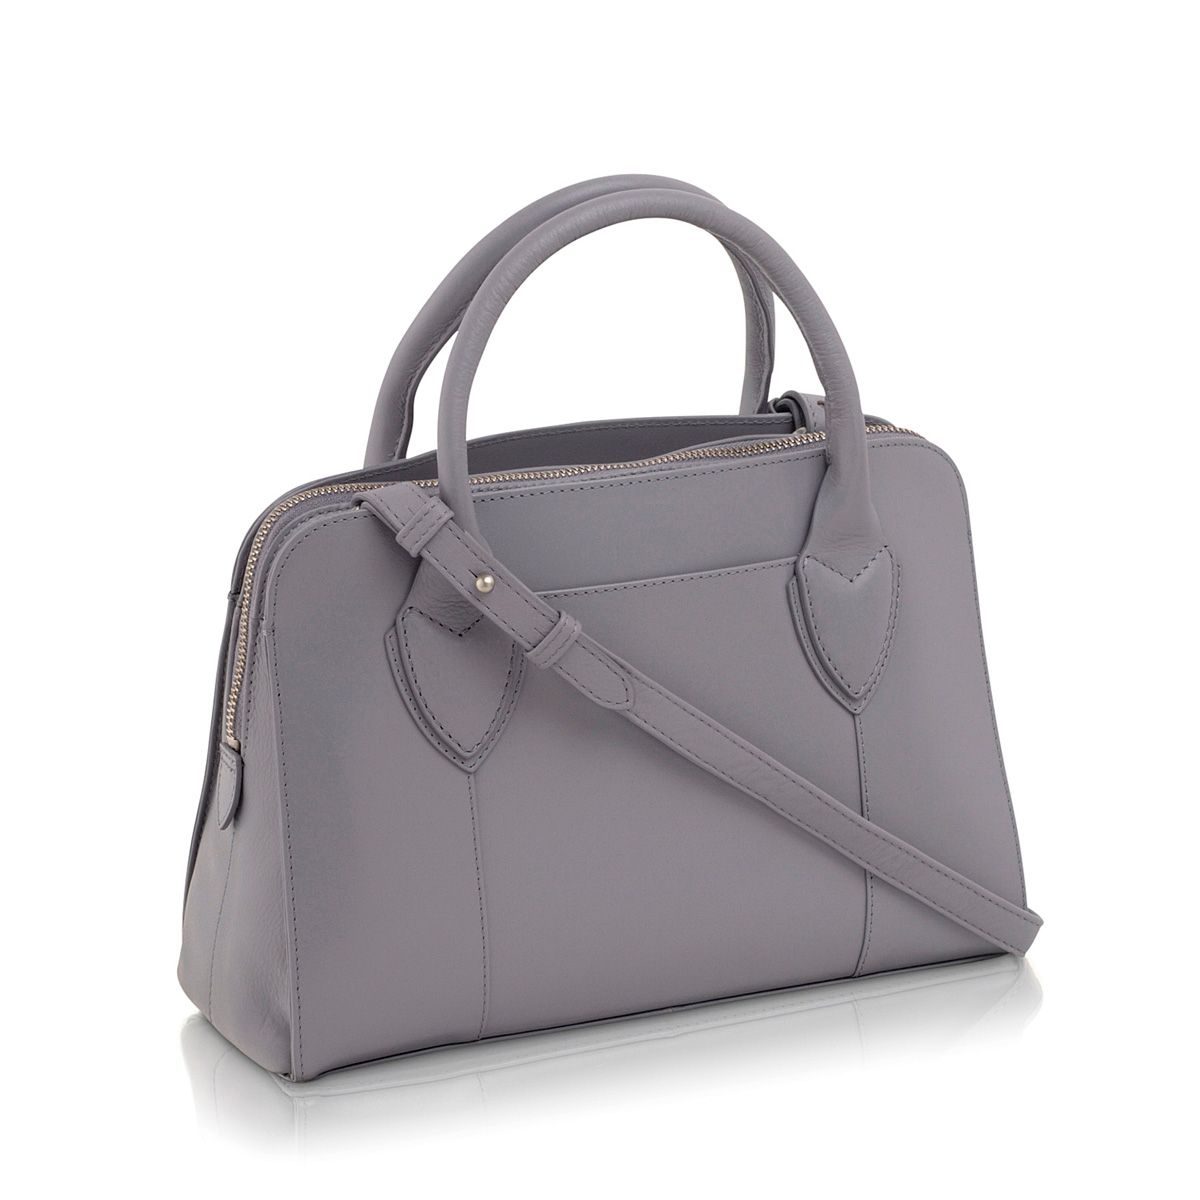 Aldgate purple medium cross body tote bag